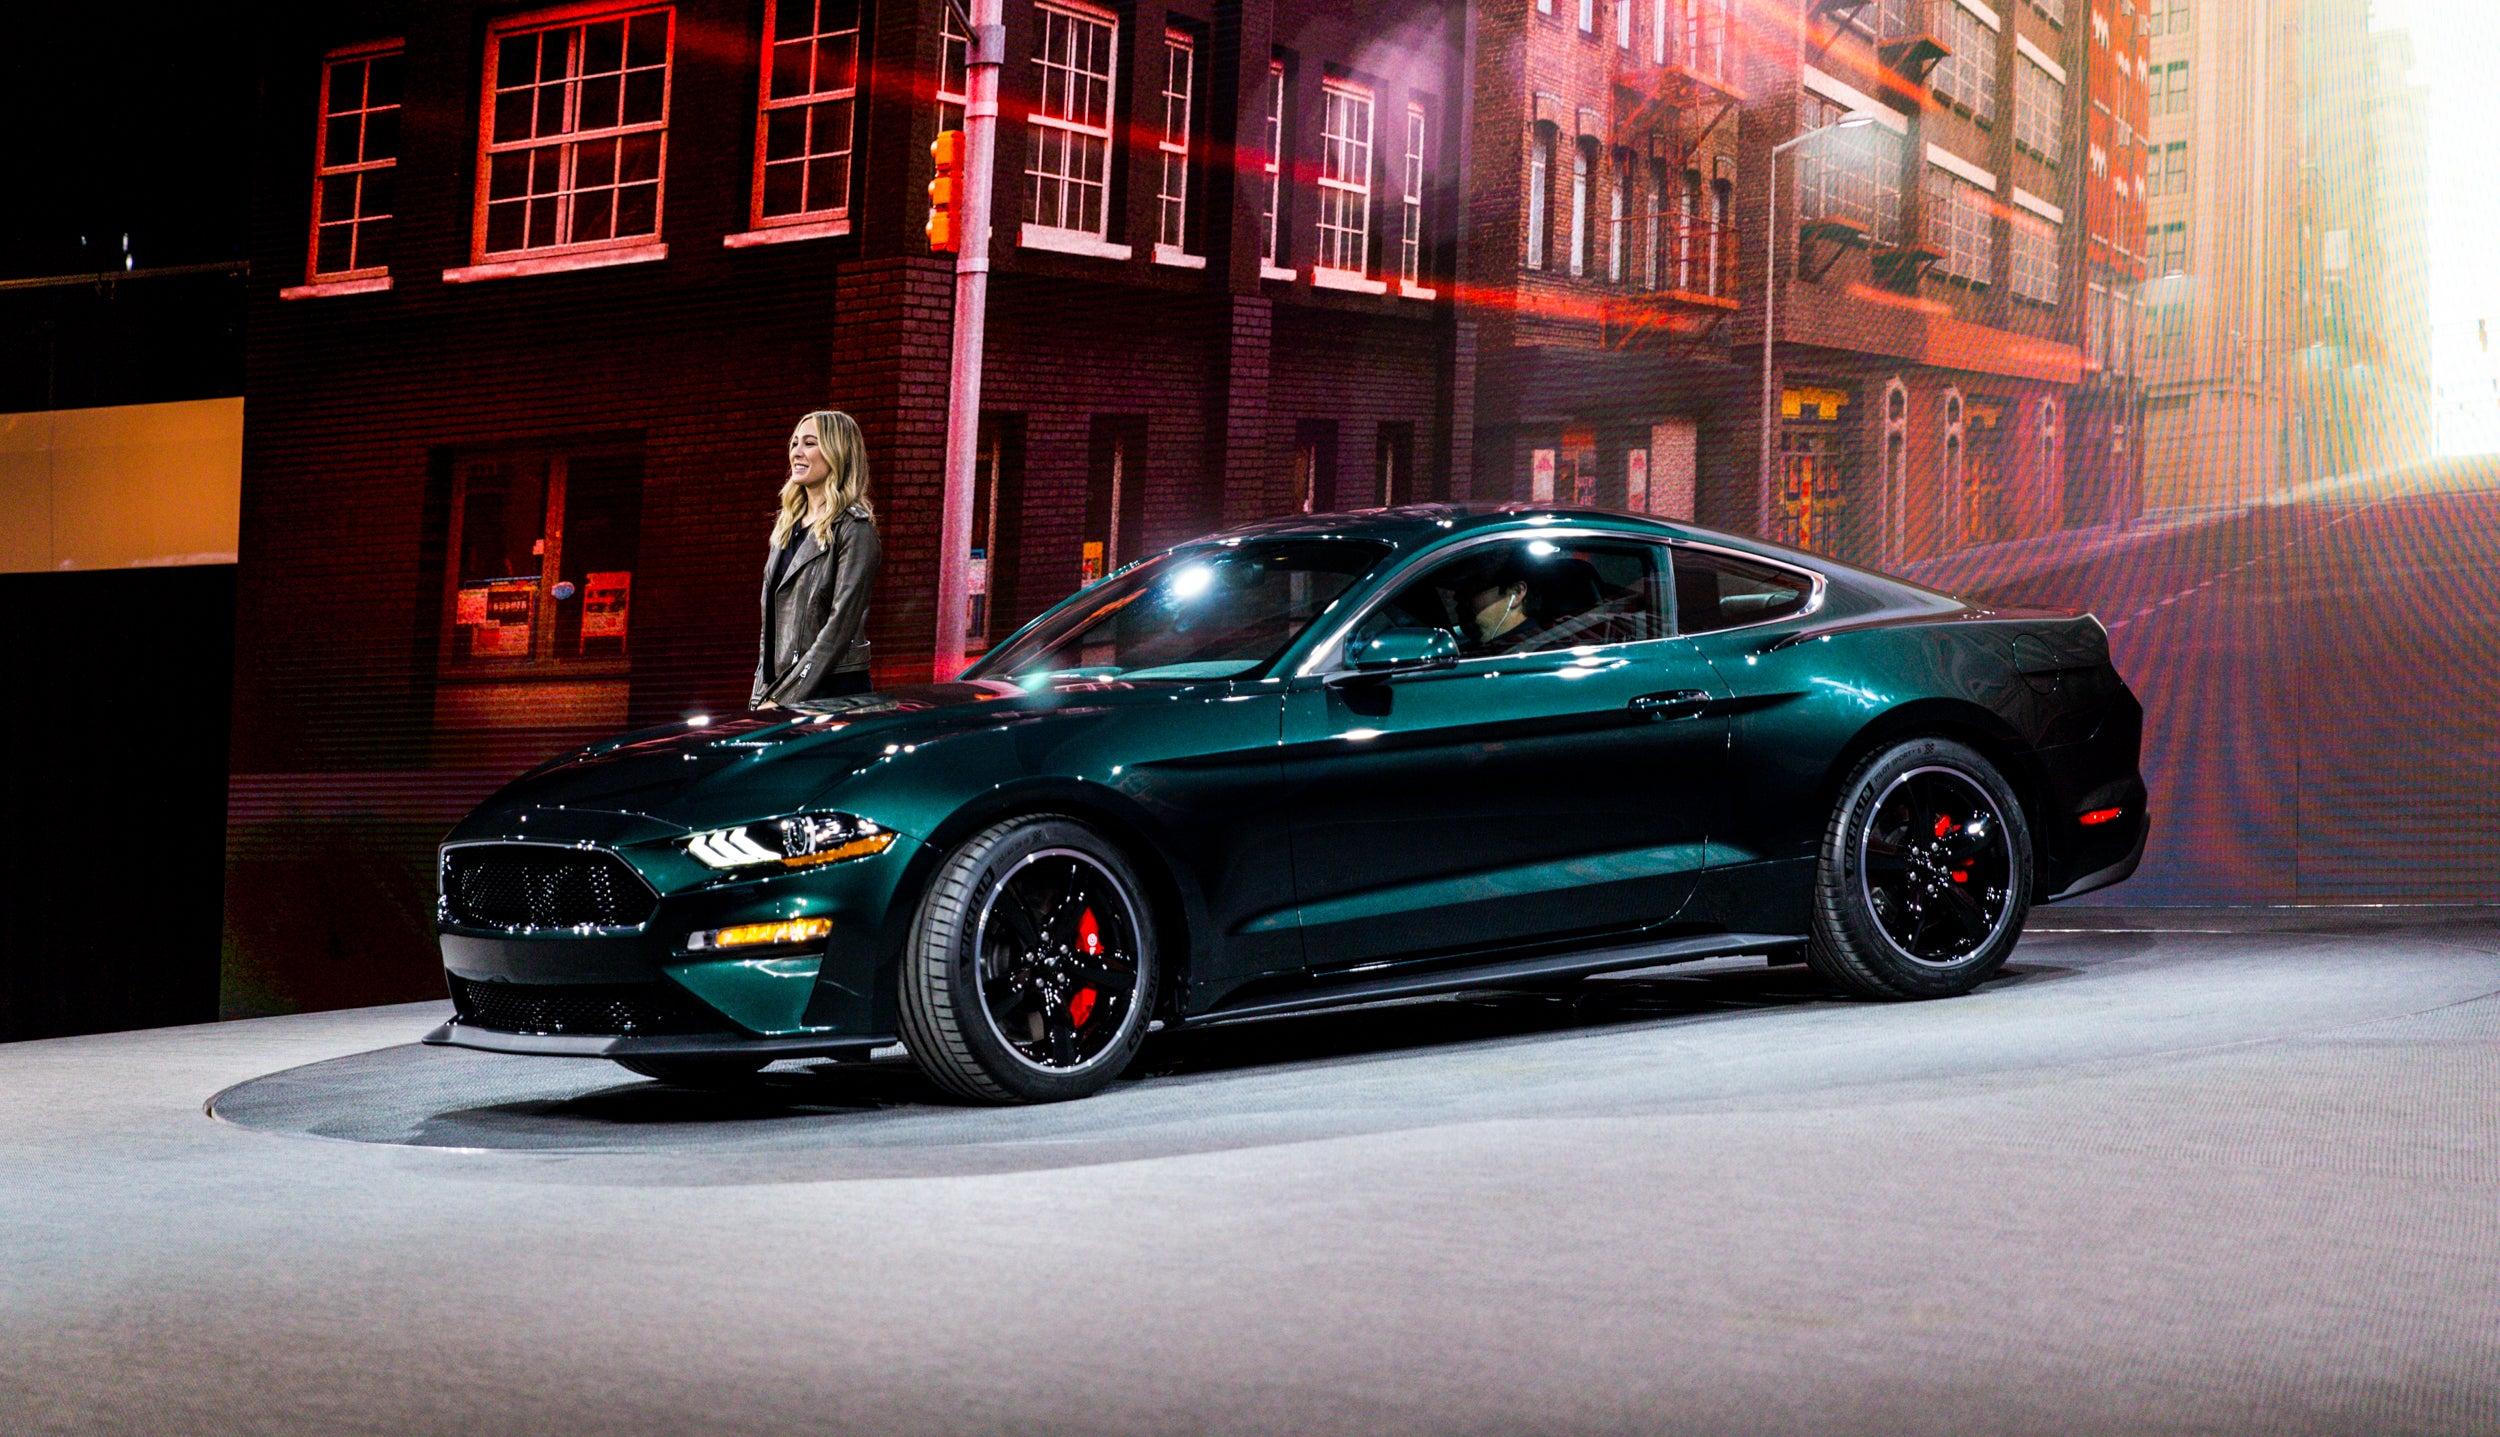 2014 - [Ford] Mustang VII - Page 16 Yc4wbr6vyh3e59hr7xgr